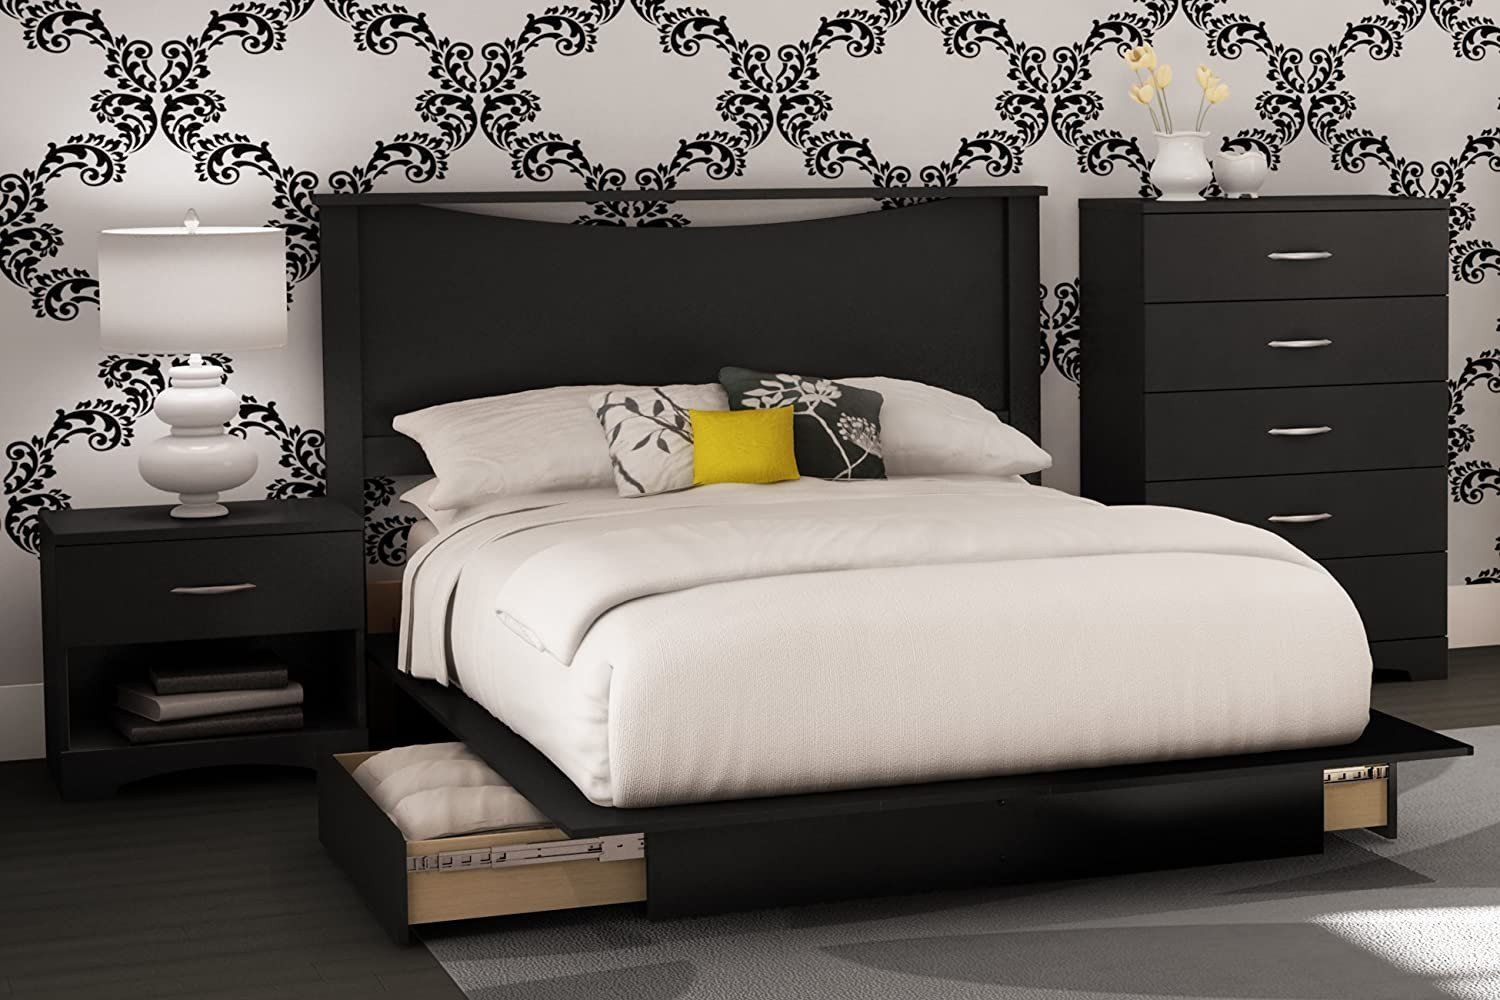 South Shore Bedroom Set South Shore Bedroom Set Step E Collection Black 4 Piece Small Bedroom Furniture Bedroom Furniture Sets Bedroom Set Designs South shore bedroom furniture